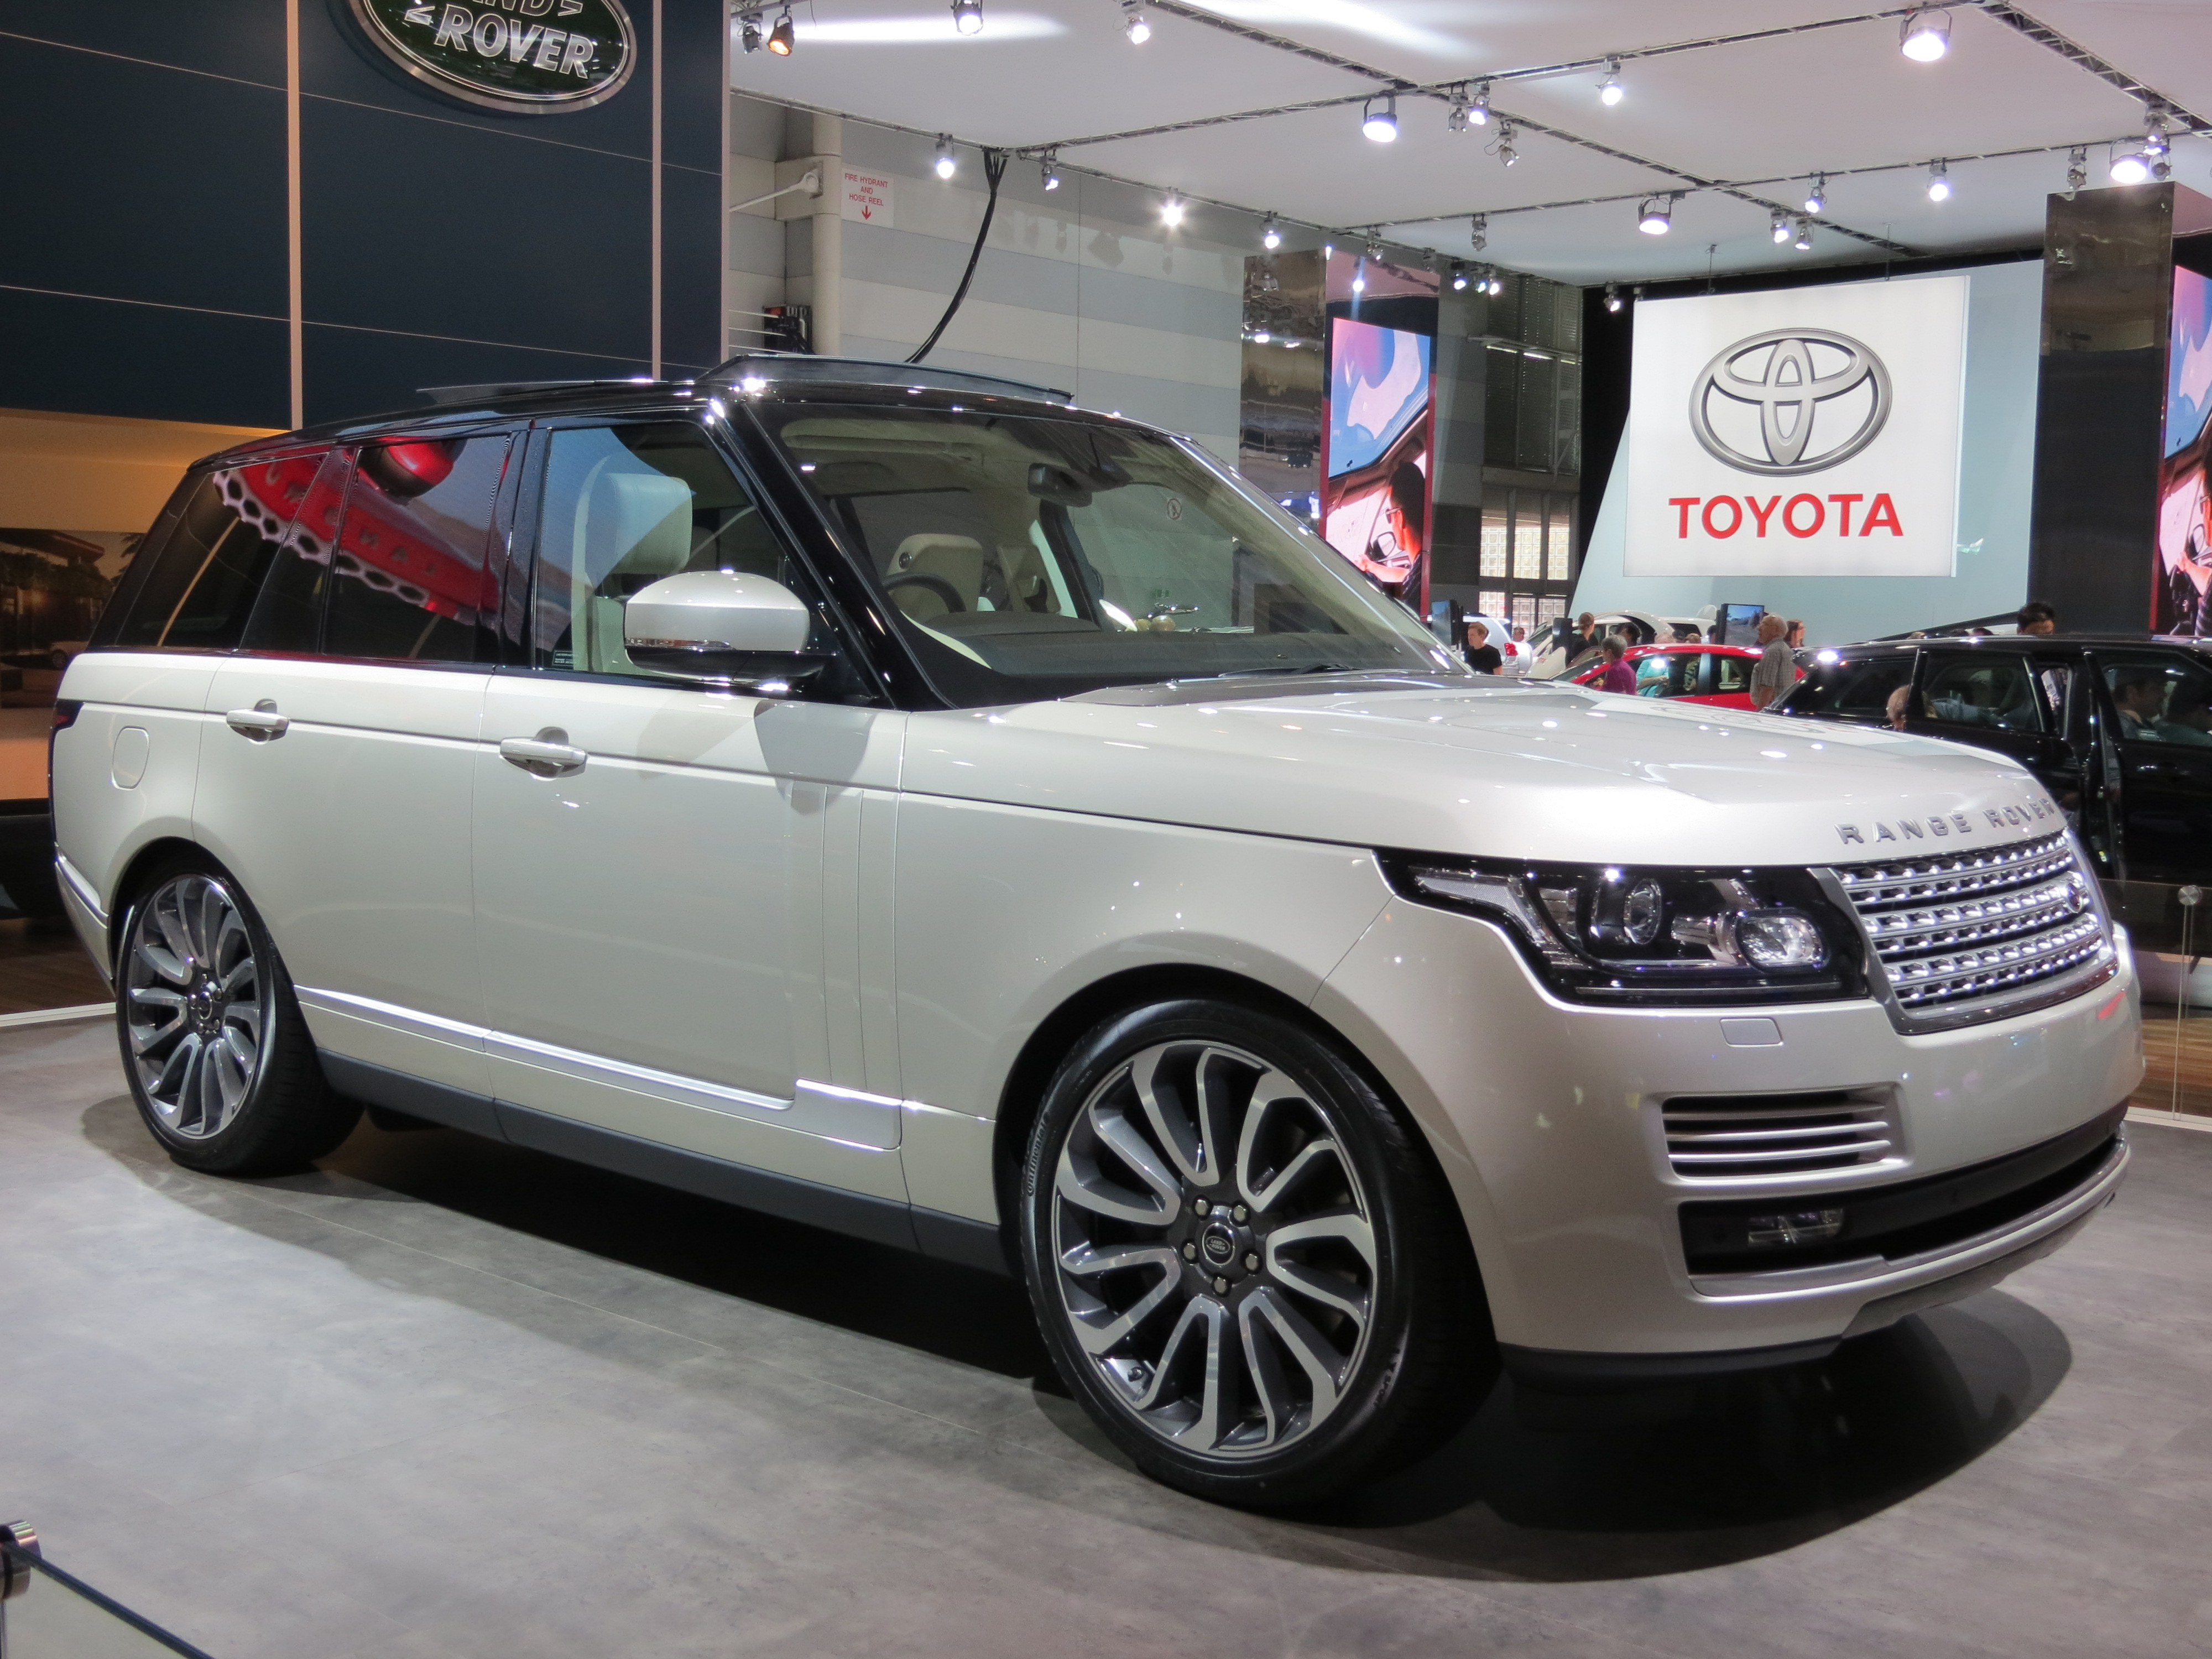 New Range Rover All New Car Price and Review 2018 2019 by Sara D